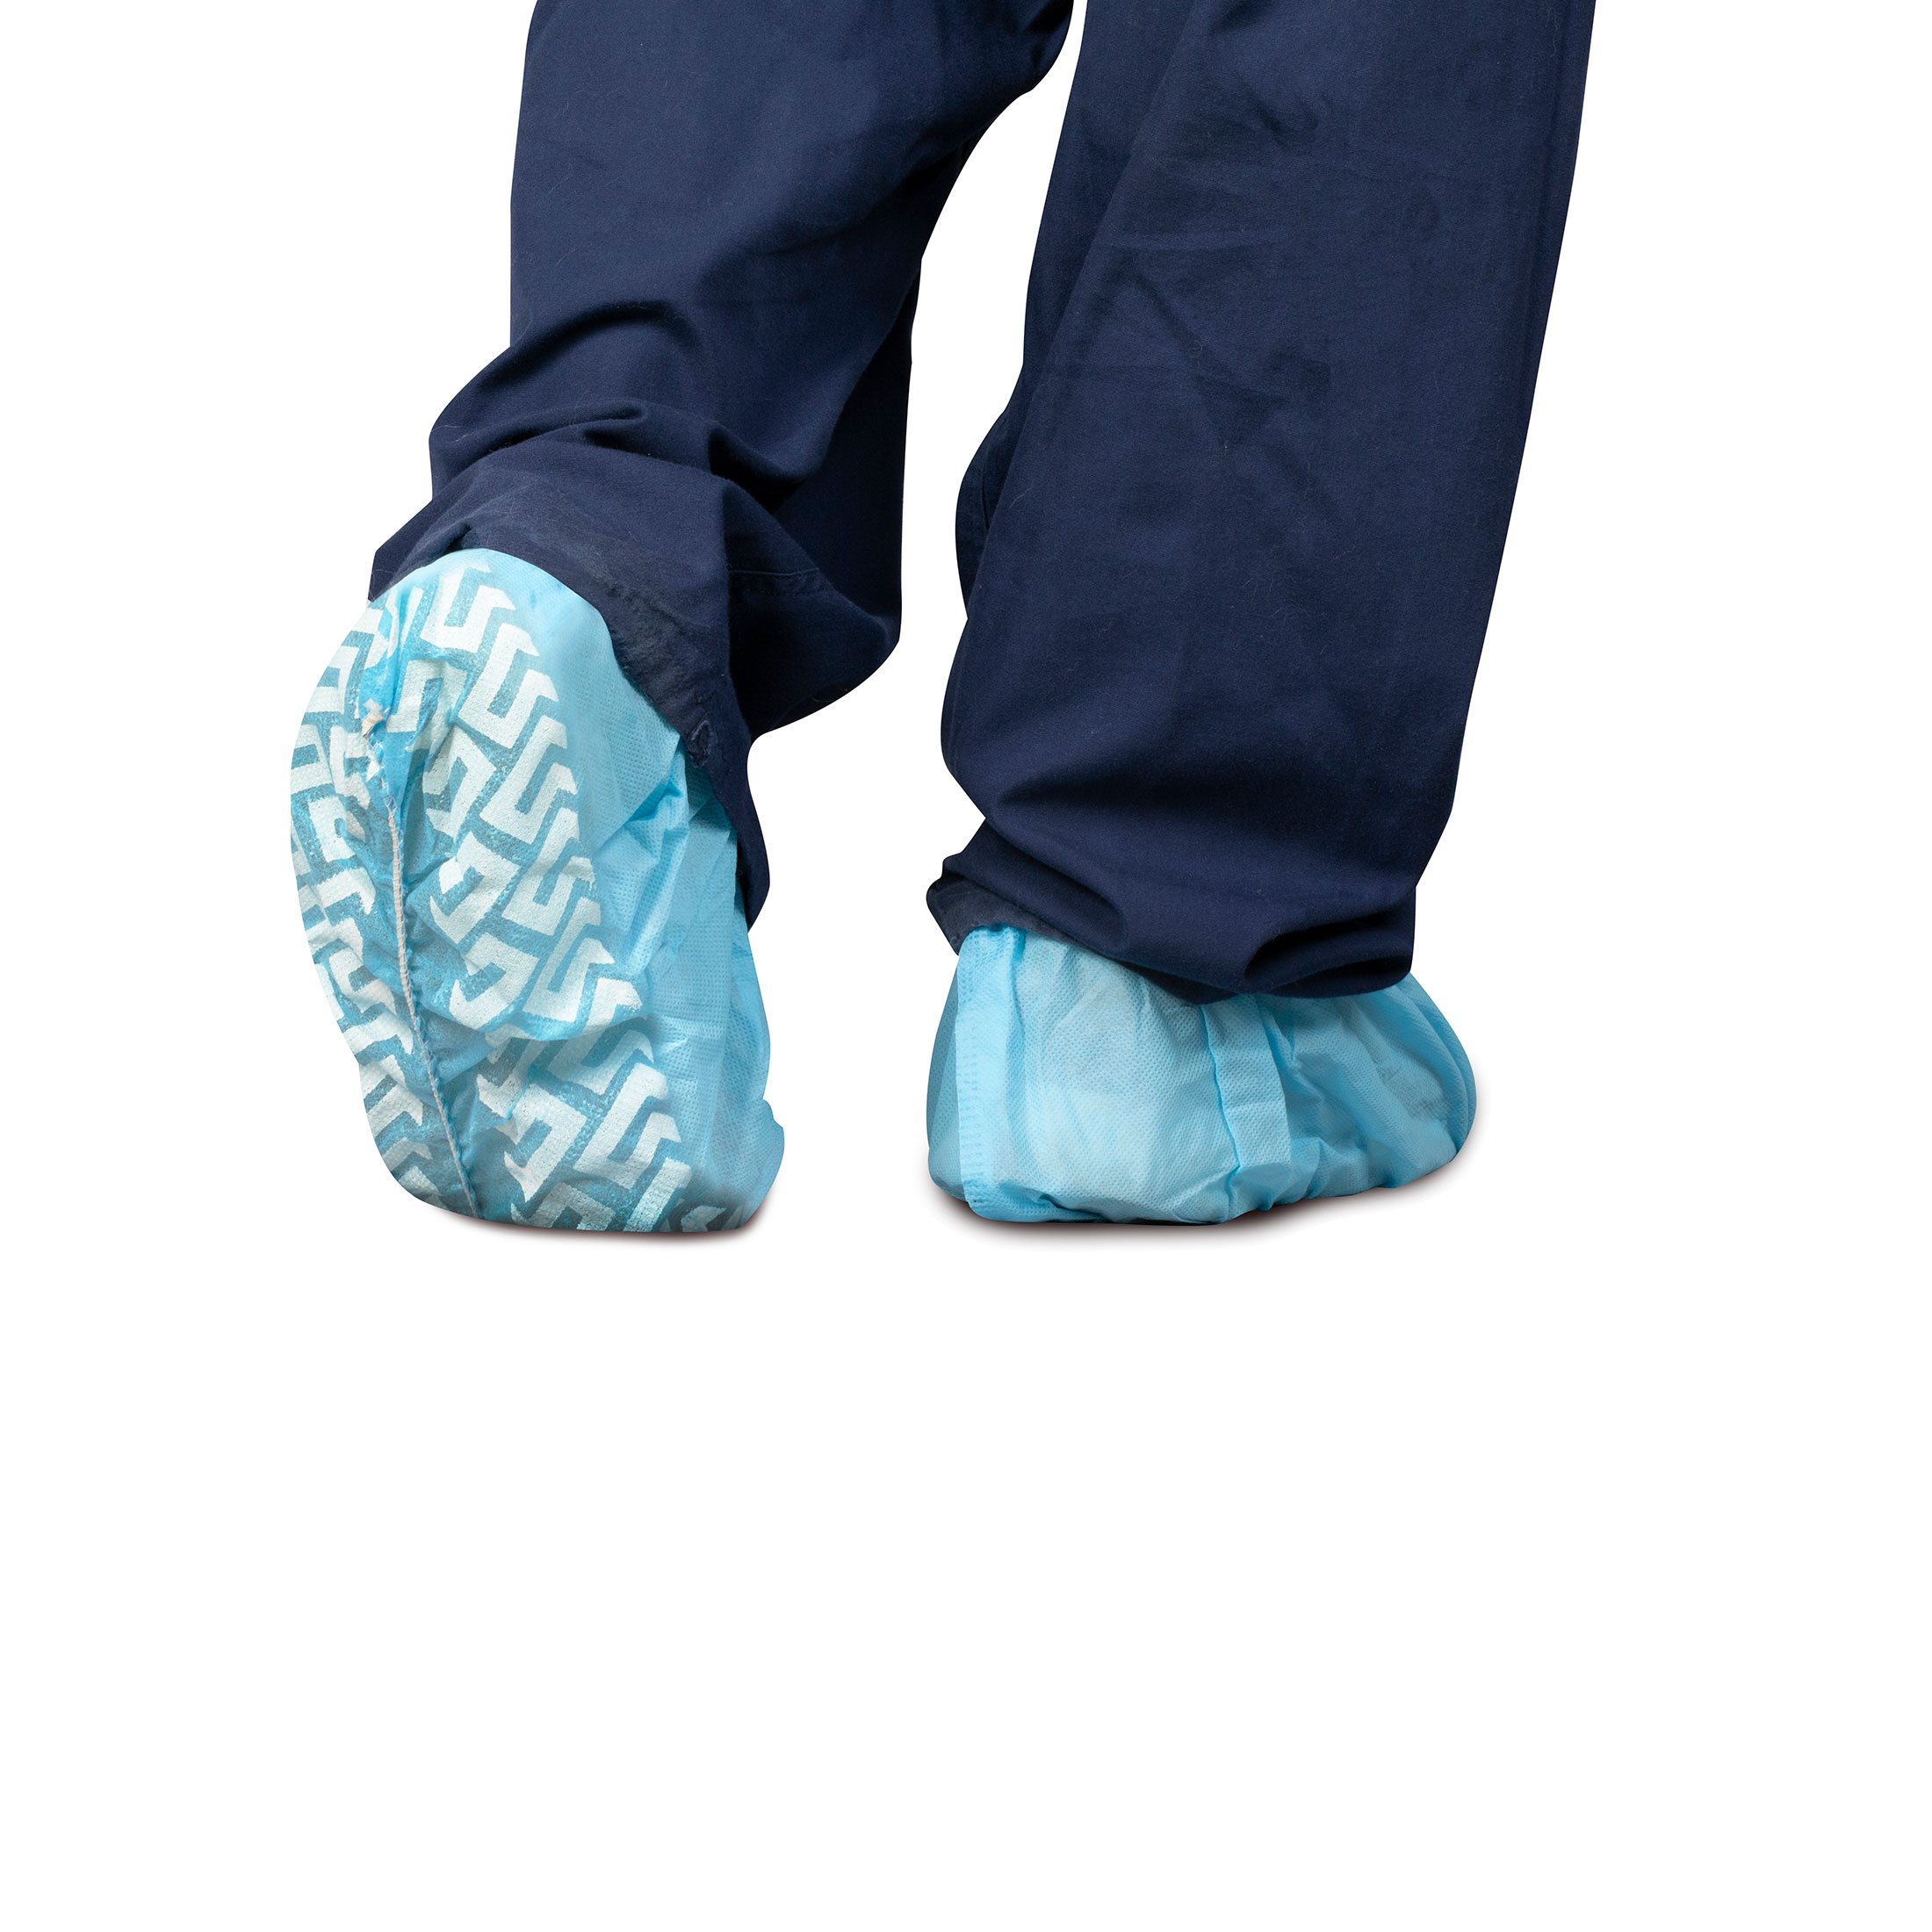 Dukal Shoe Covers, Non-Skid, PE, Blue, 100/Bag